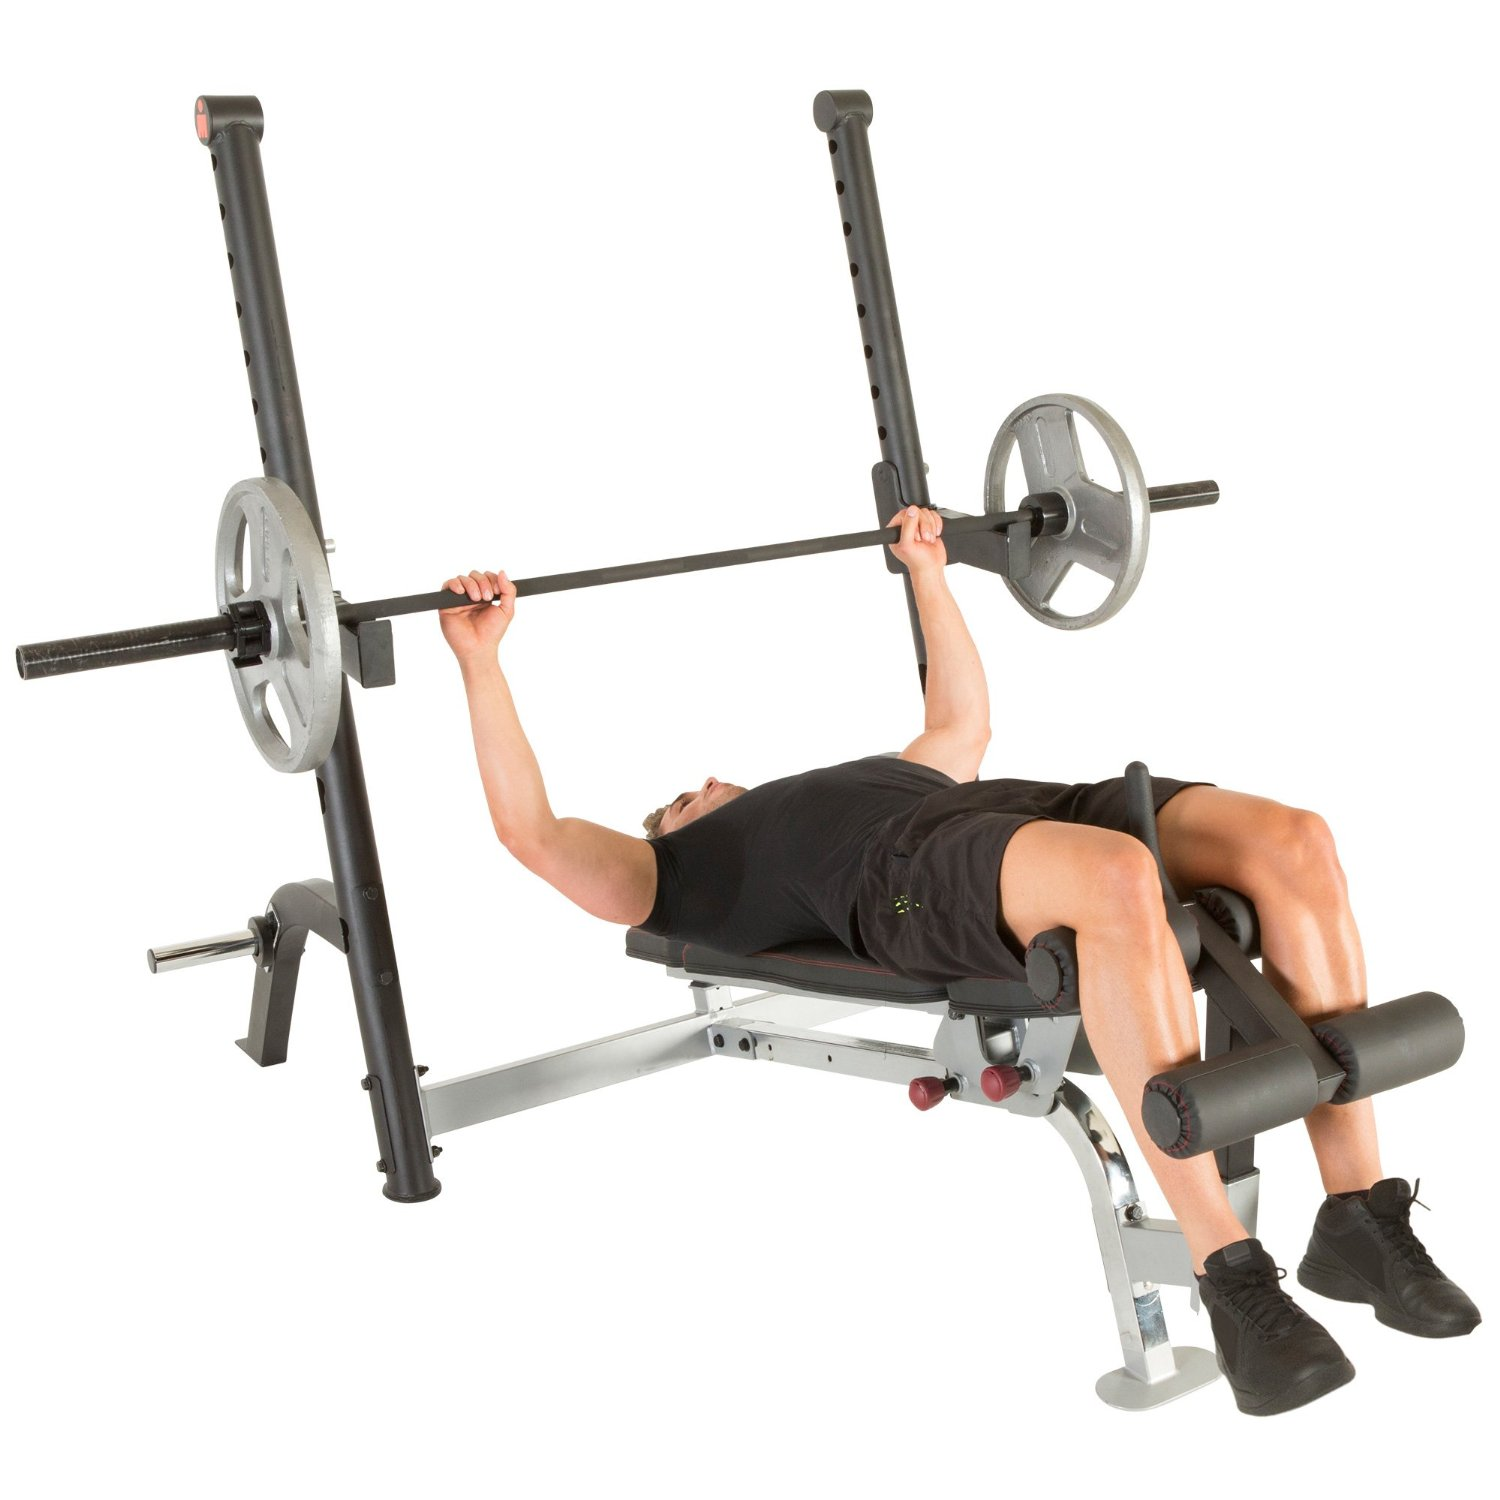 Best weight benches 101 how to choose the best weight bench for home use home gym rat Weight bench and weights